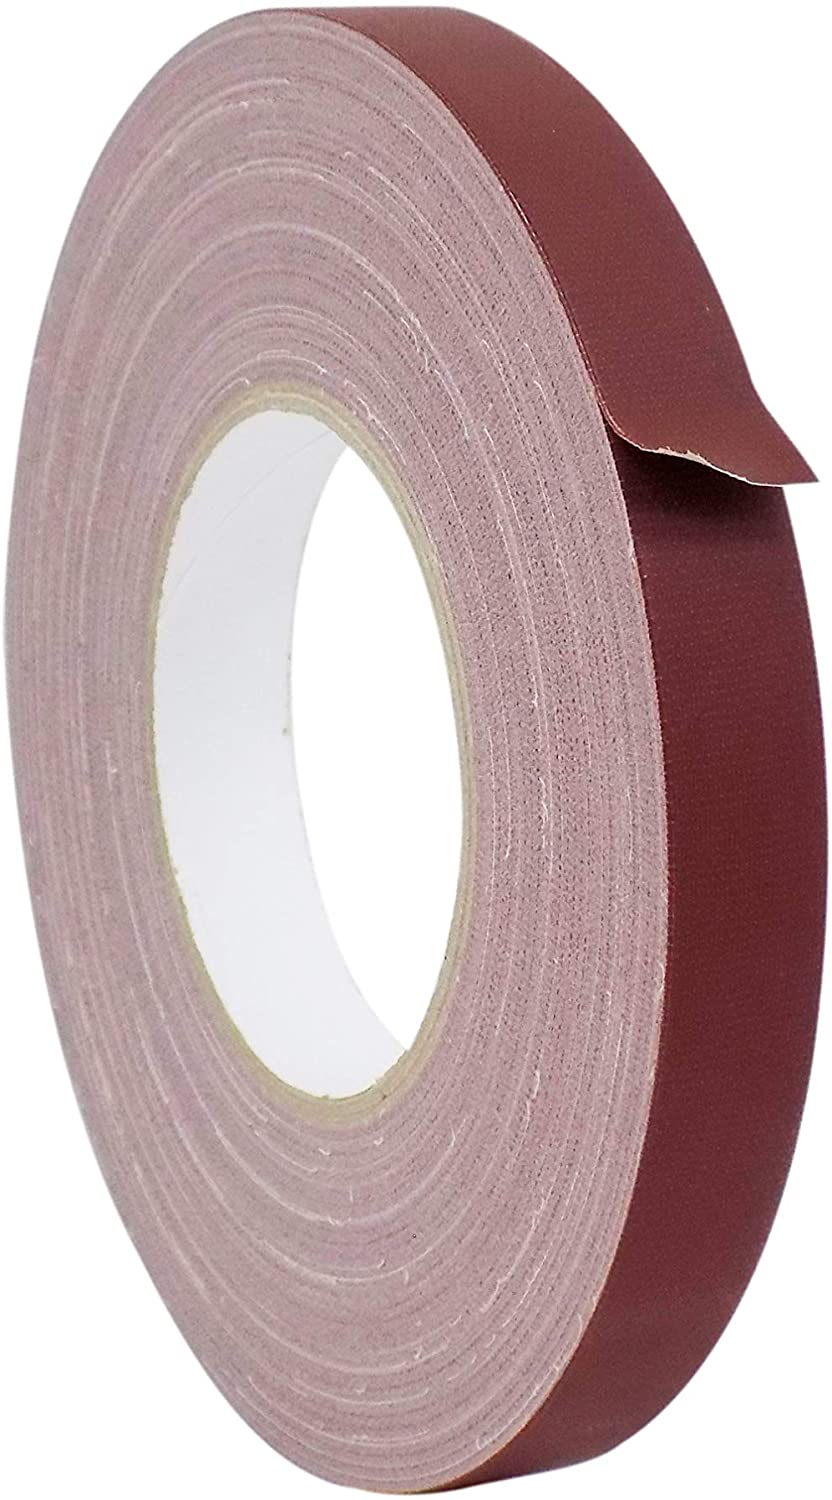 WOD GTC12 Gaffer Tape, Burgundy Low Gloss Finish Film, 1/2 inch x 60 yds. Residue Free, Non Reflective Cloth Fabric, Secure Cords, Water Resistant, Photography, Filming Backdrop, Production